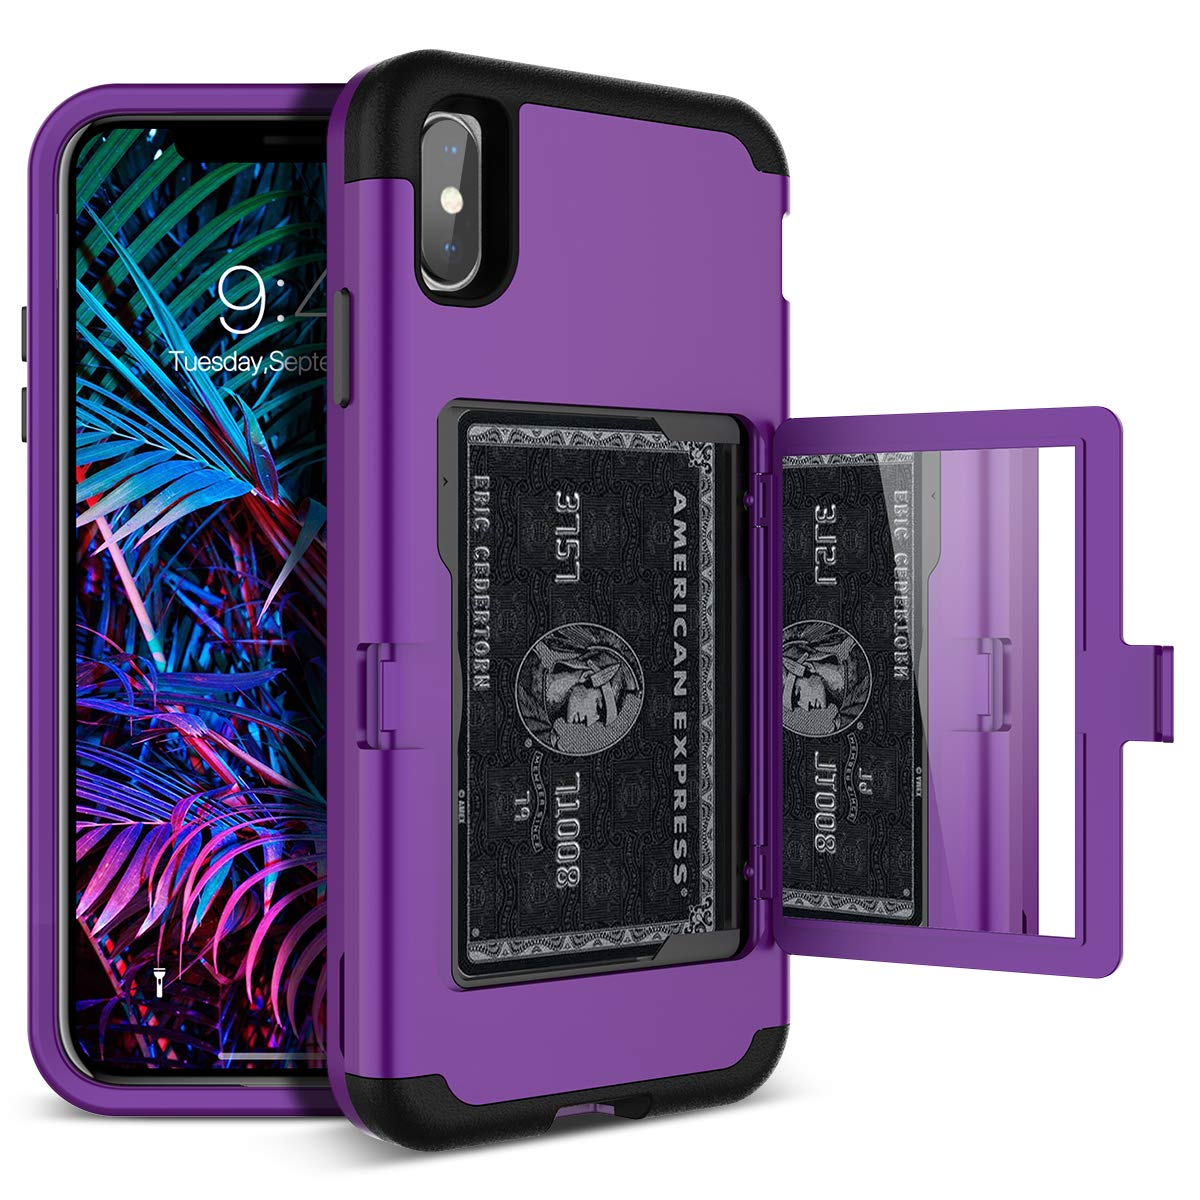 iPhone Xs Max Wallet Case - WeLoveCase Defender Wallet Card Holder Cover with Hidden Back Mirror Heavy Duty Protection Three Layer Shockproof Armor Full Protective Case for iPhone Xs Max - Purple